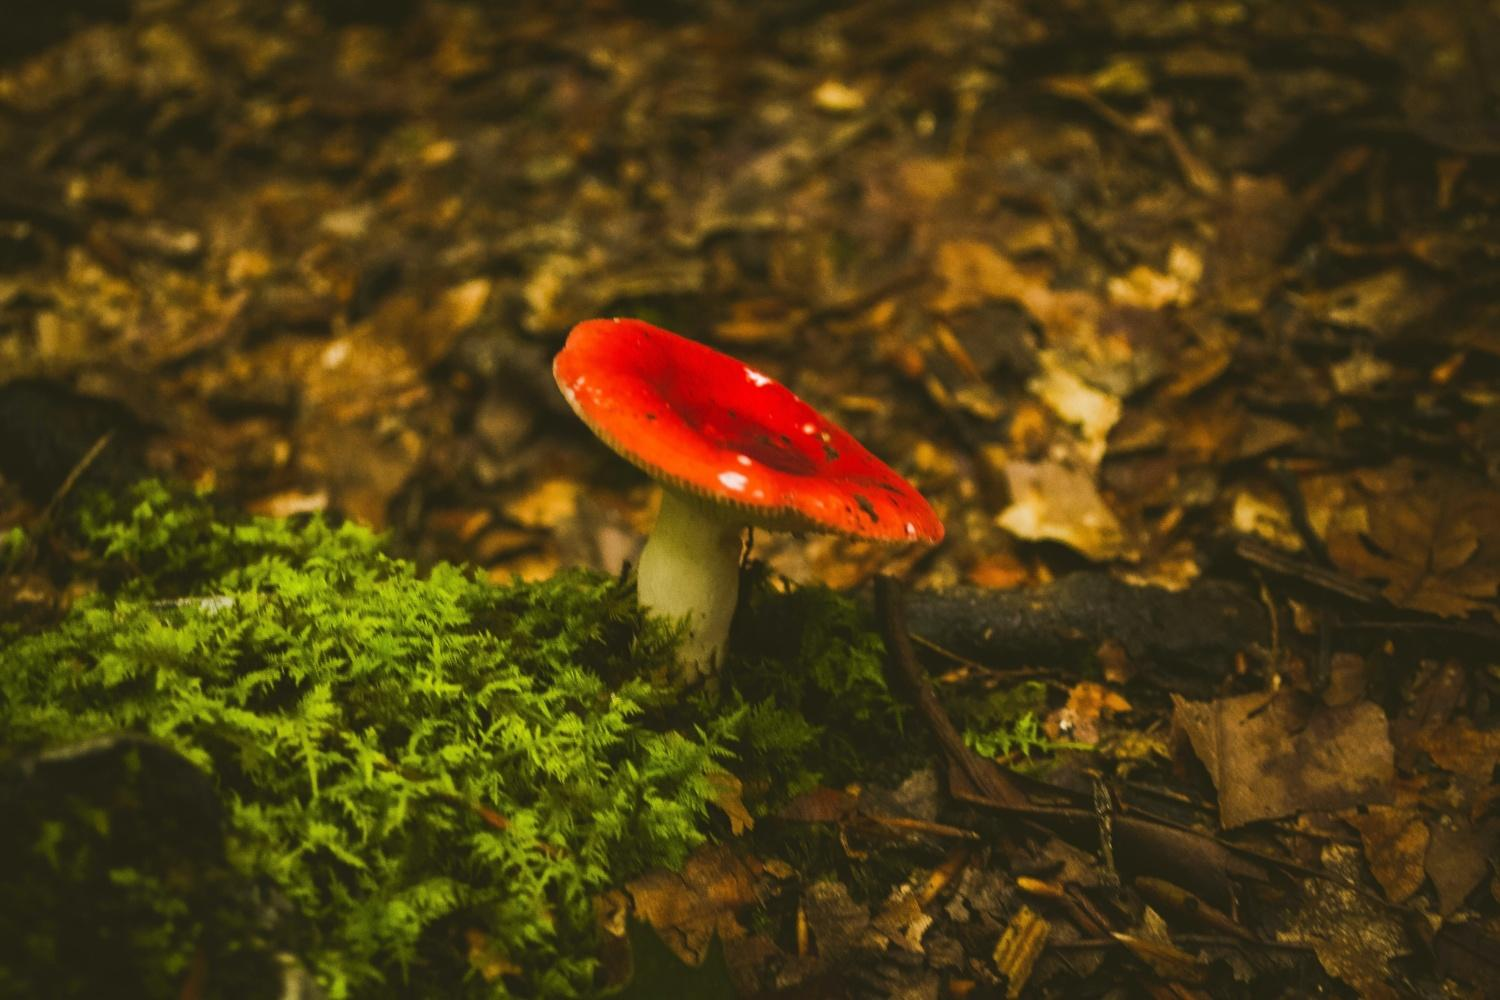 Fairytale toadstool in forest